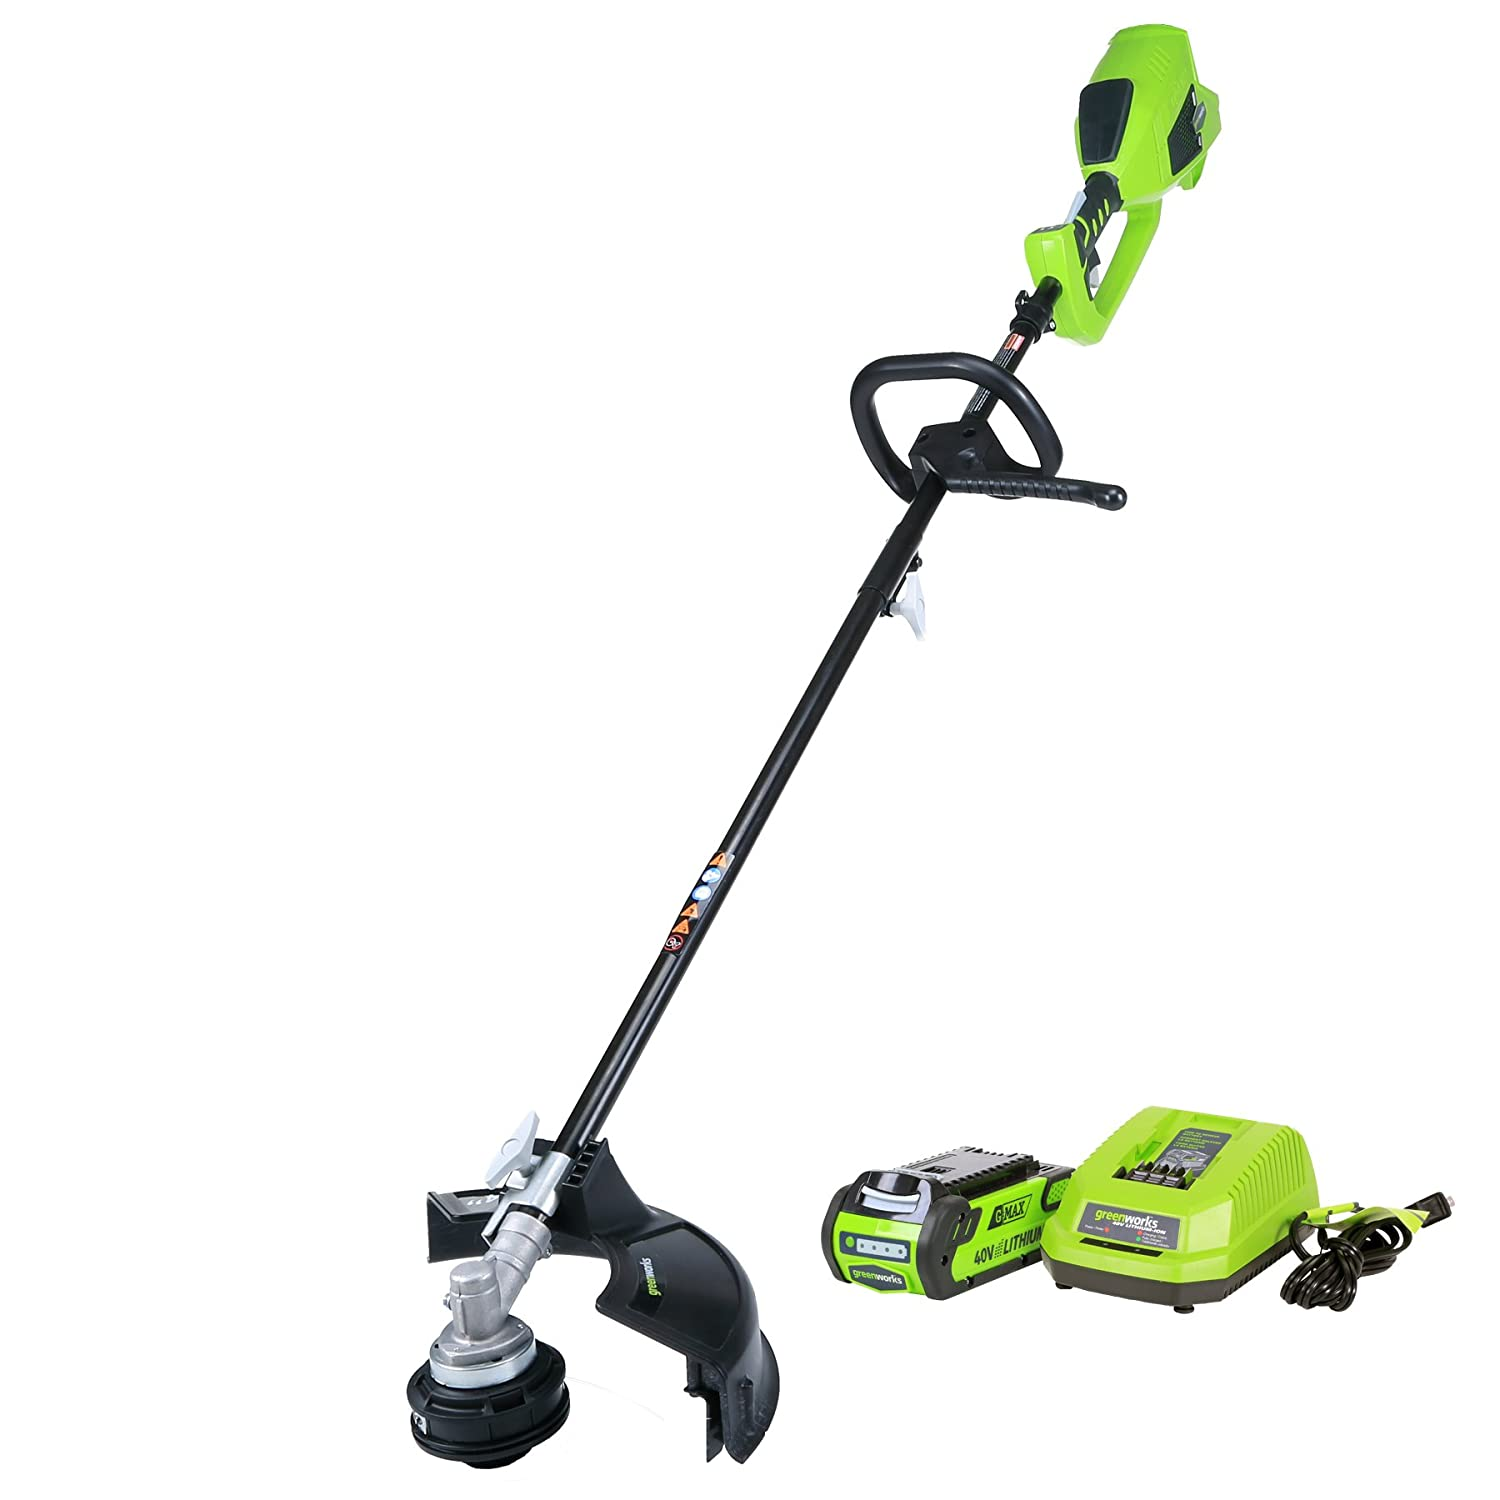 GreenWorks 2100702 battery-powered string trimmer